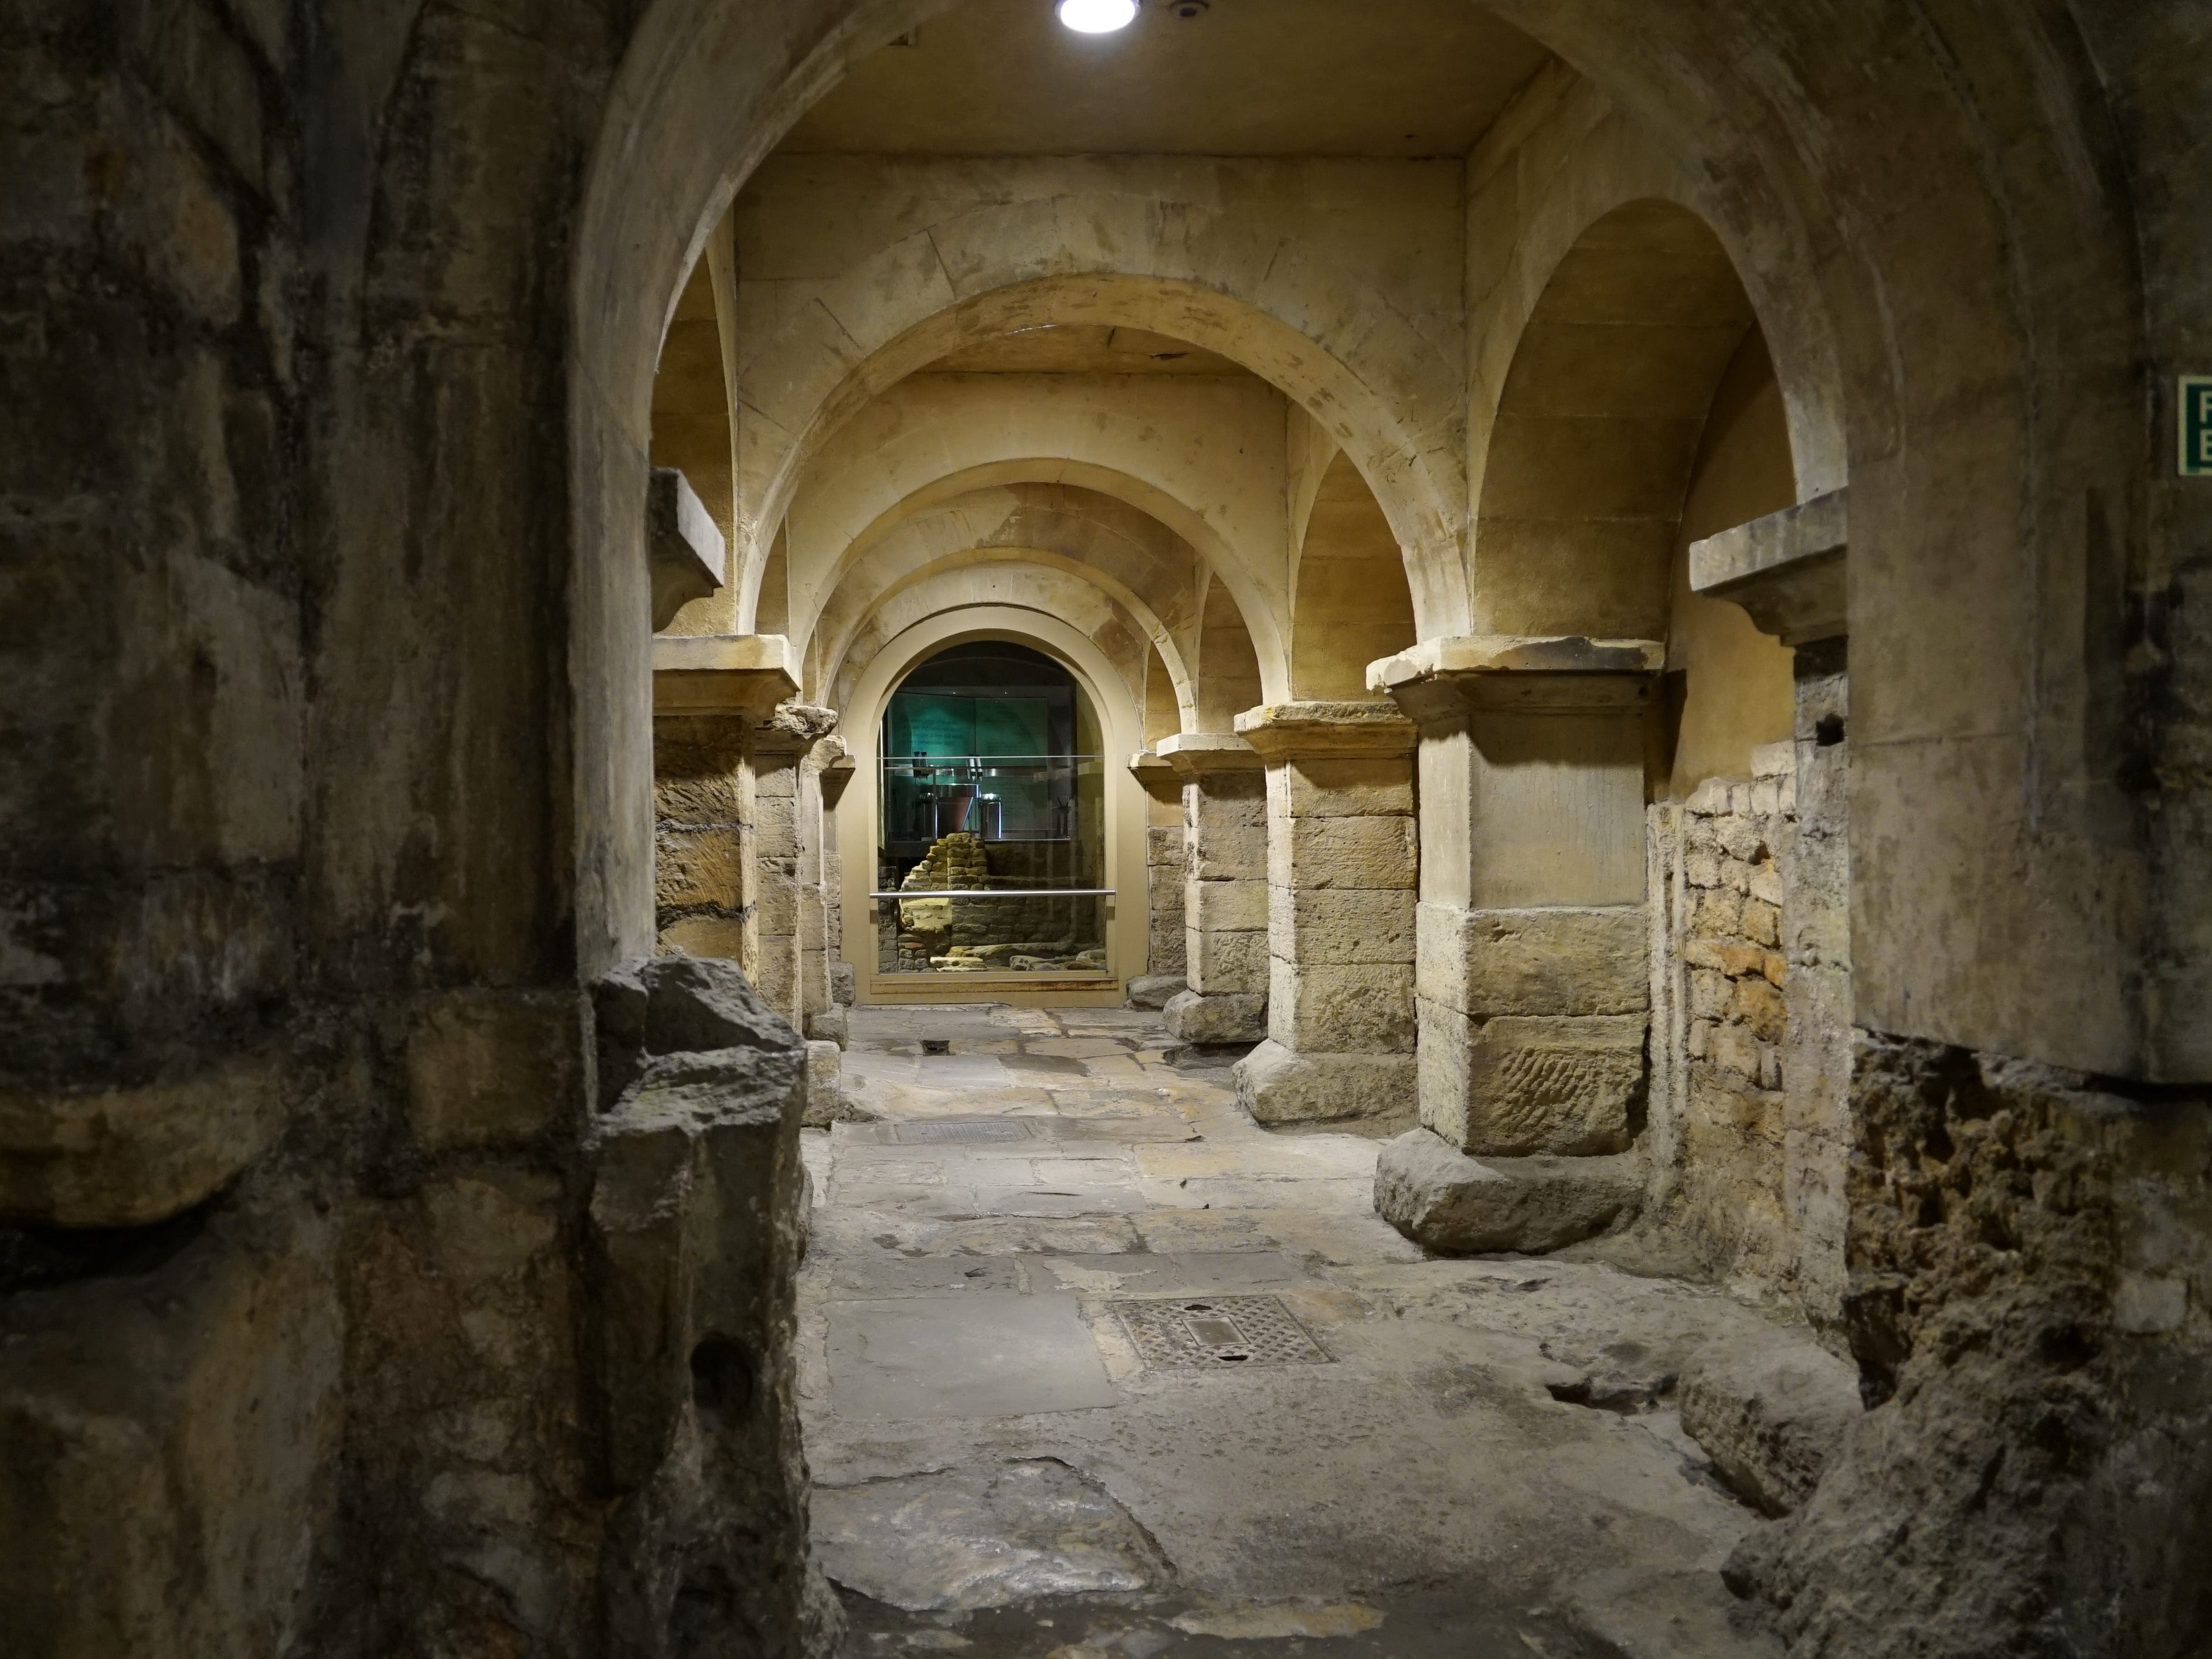 Incredible remnants of the original structure of the Roman Baths.